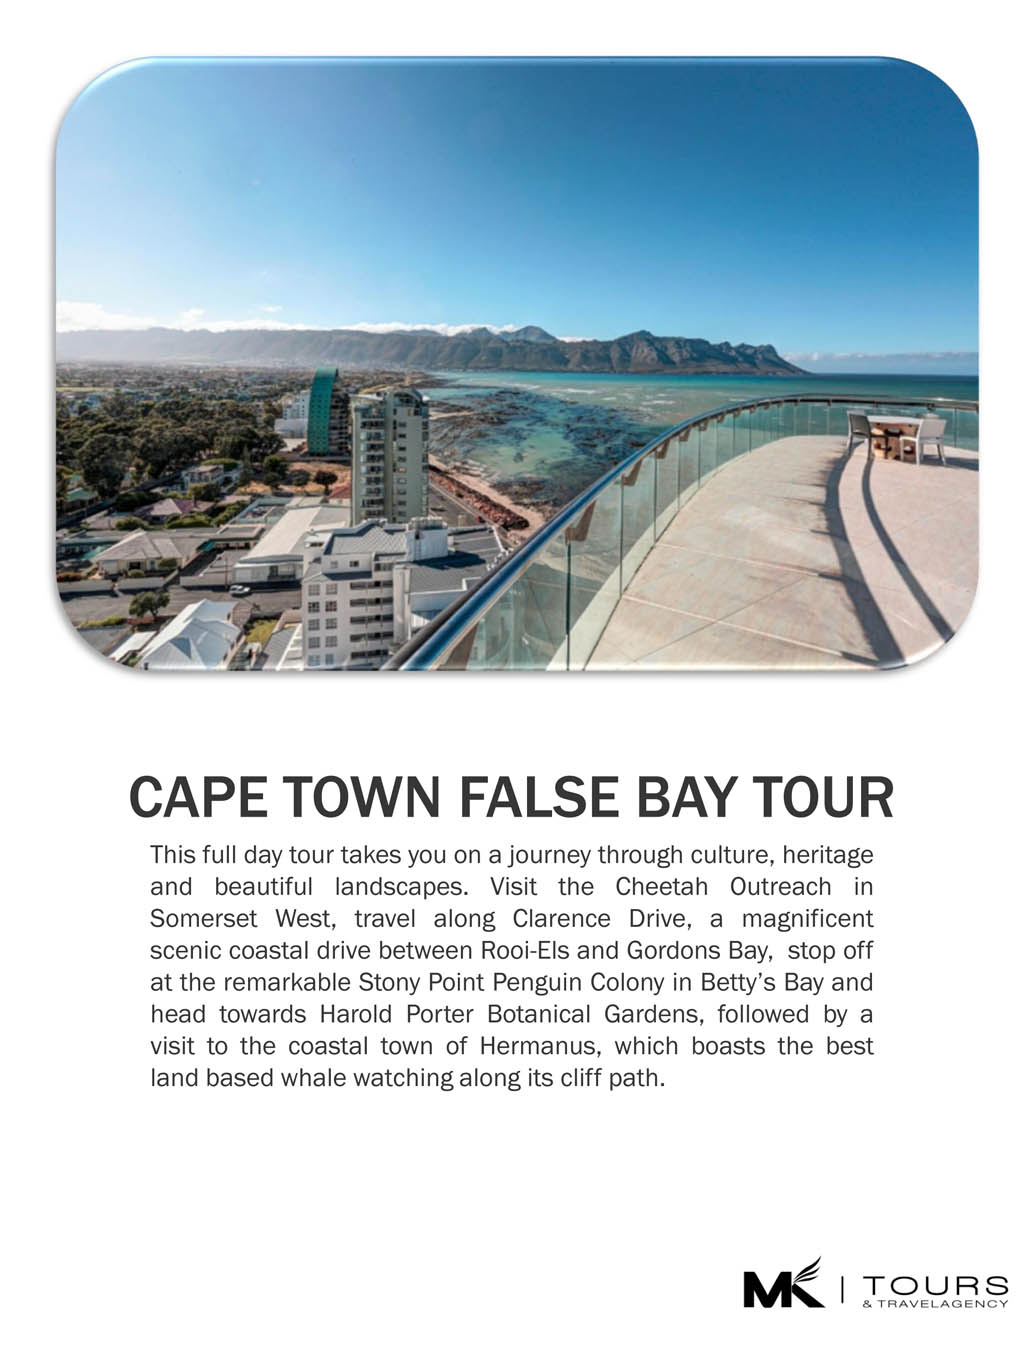 CAPE TOWN FALSE BAY TOUR